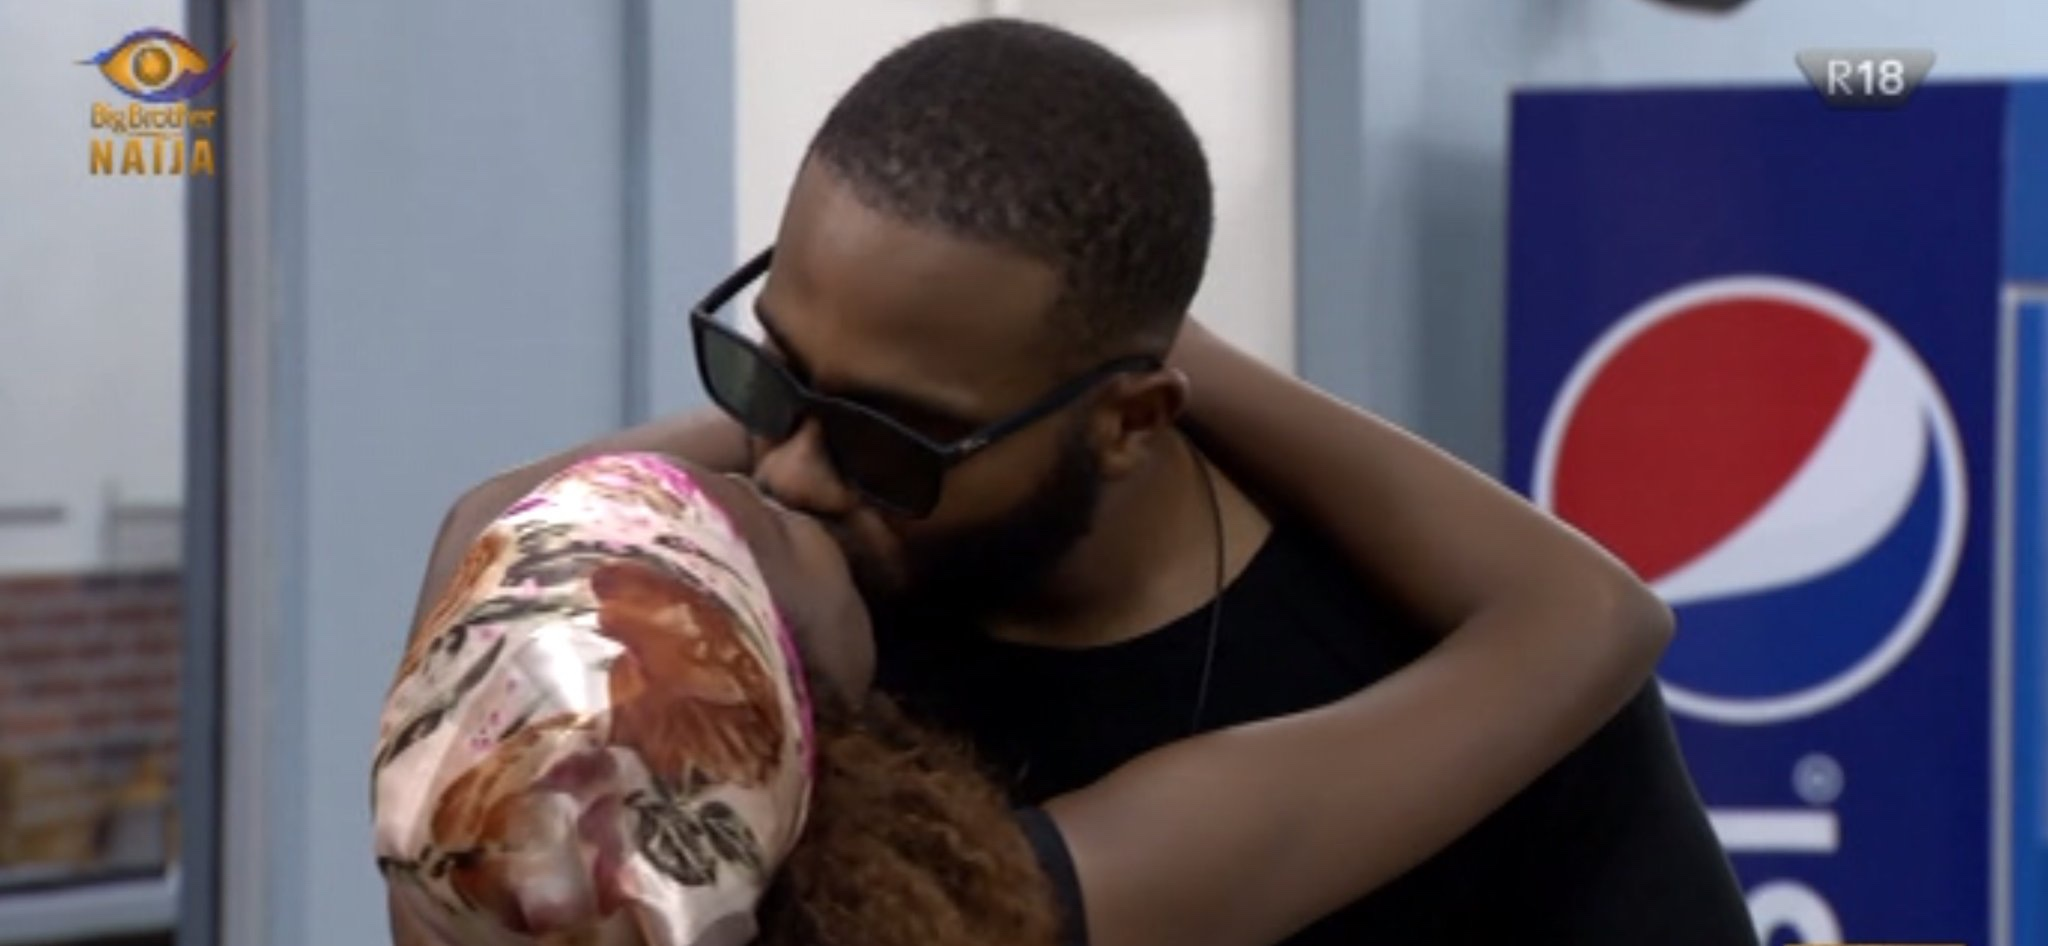 #BBNaija: Watch Kiddwaya And Wathoni Share Passionate Kiss [VIDEO]